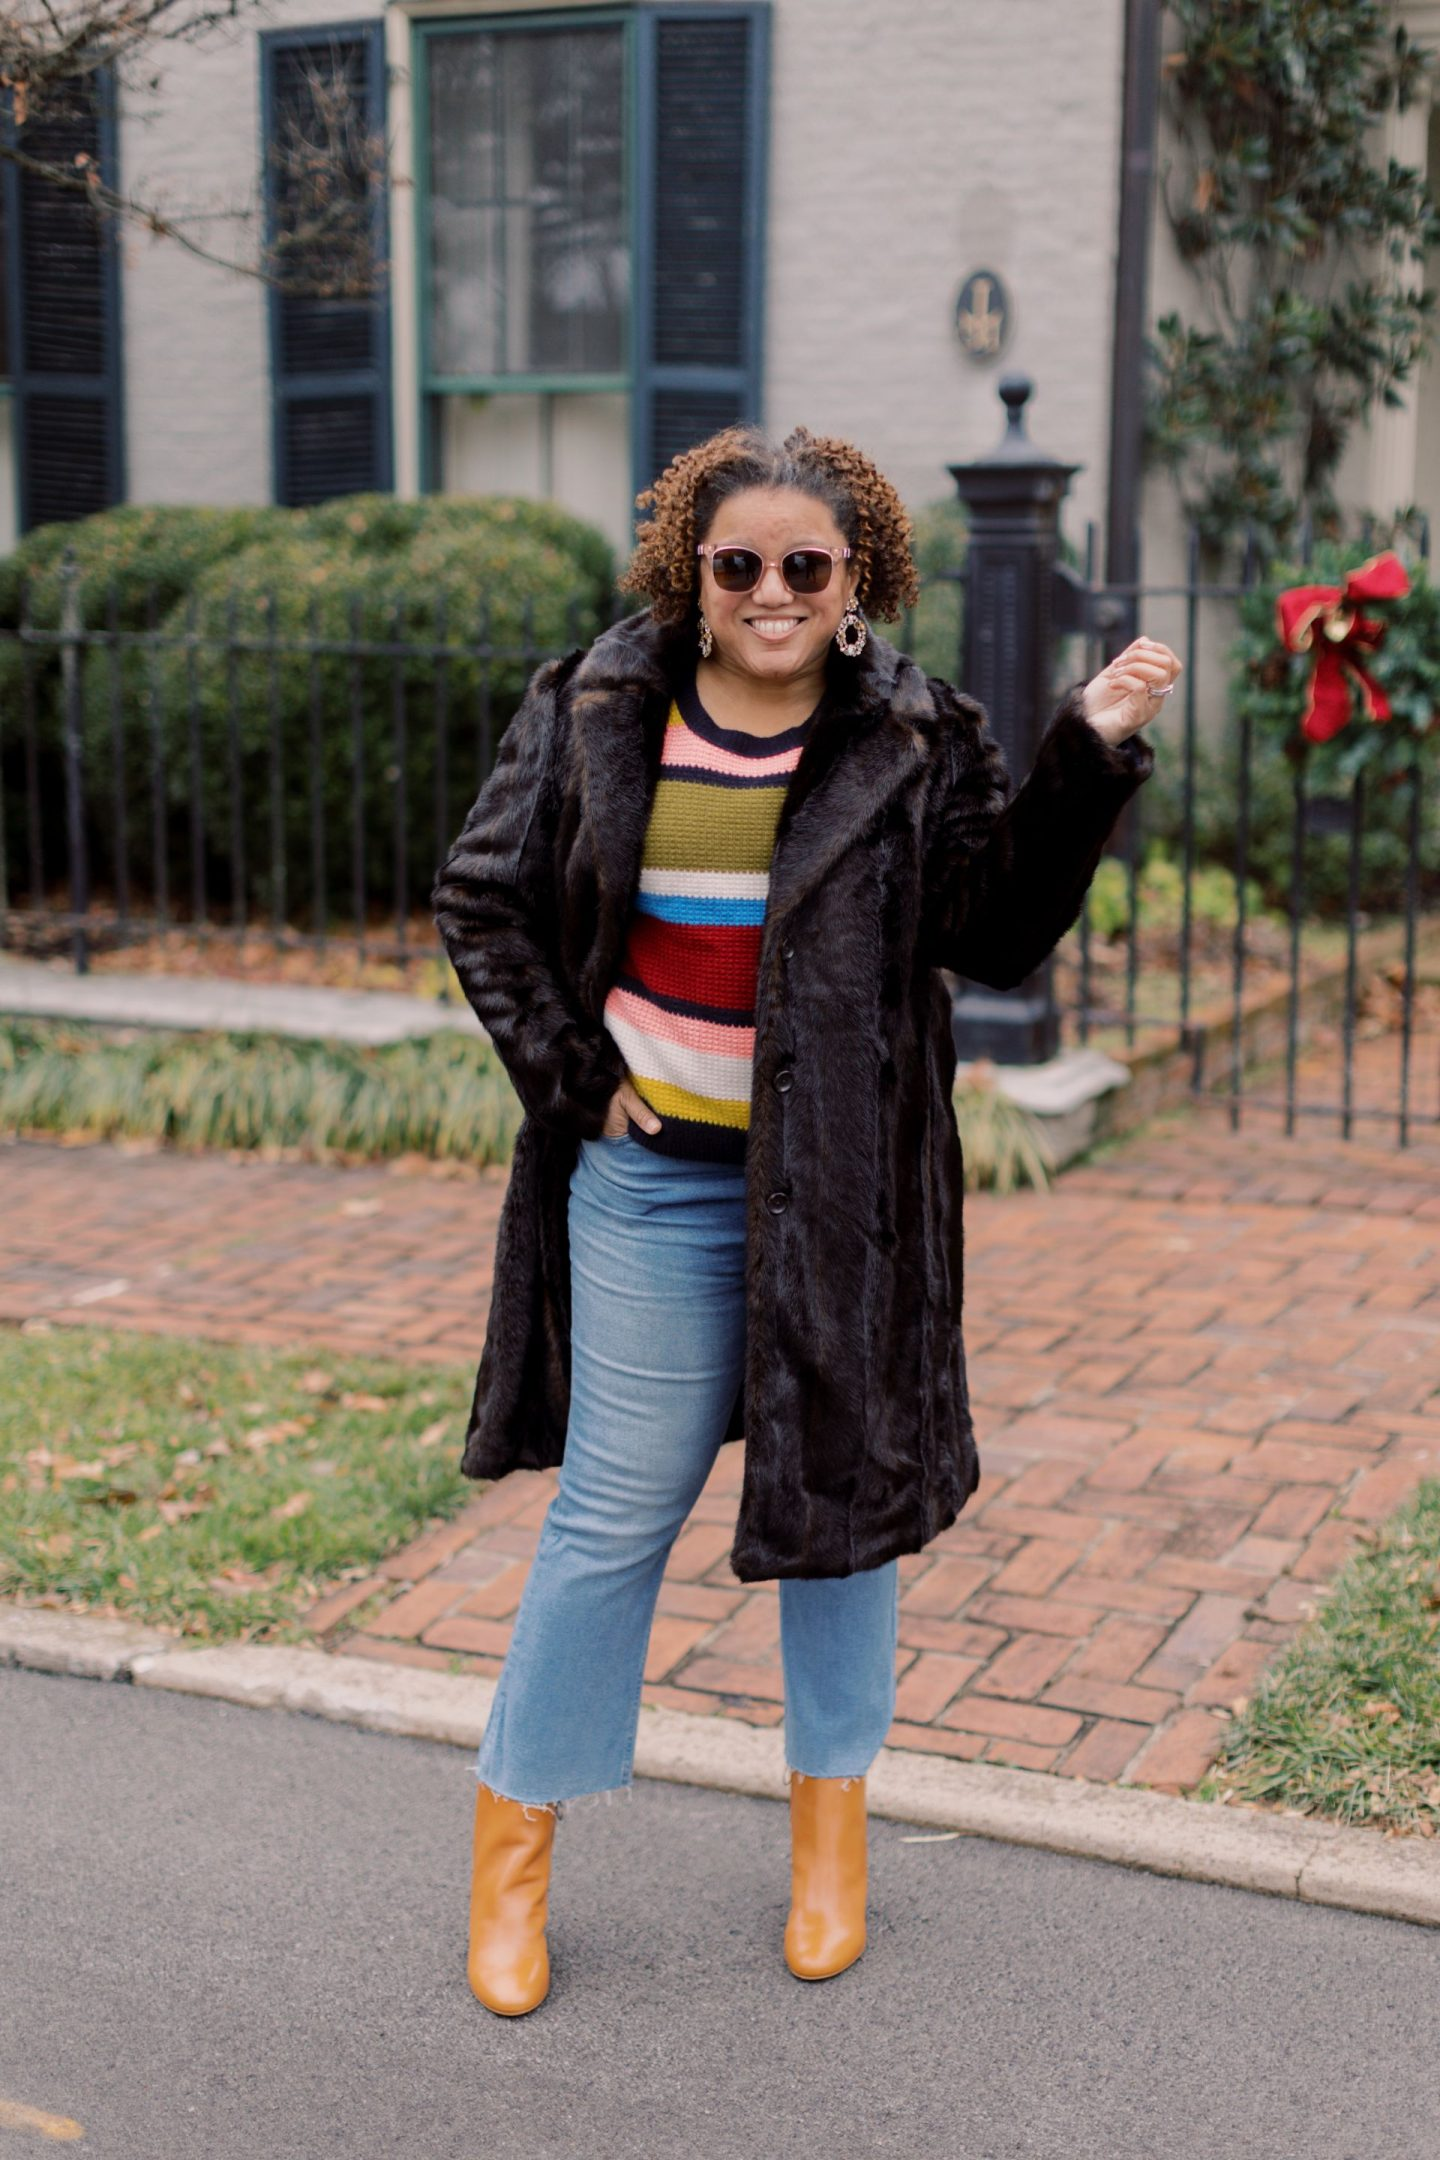 Colorful Sweaters by popular Kentucky fashion blog, Really Rynetta: image of a woman standing outside and wearing a J. Crew Cashmere Waffle-Knit Sweater in Stripe, cropped denim, J. Crew Cocoon Coat in Italian Stadium-Cloth Wool, brown leather ankle boots, and holding a brown leather tote.